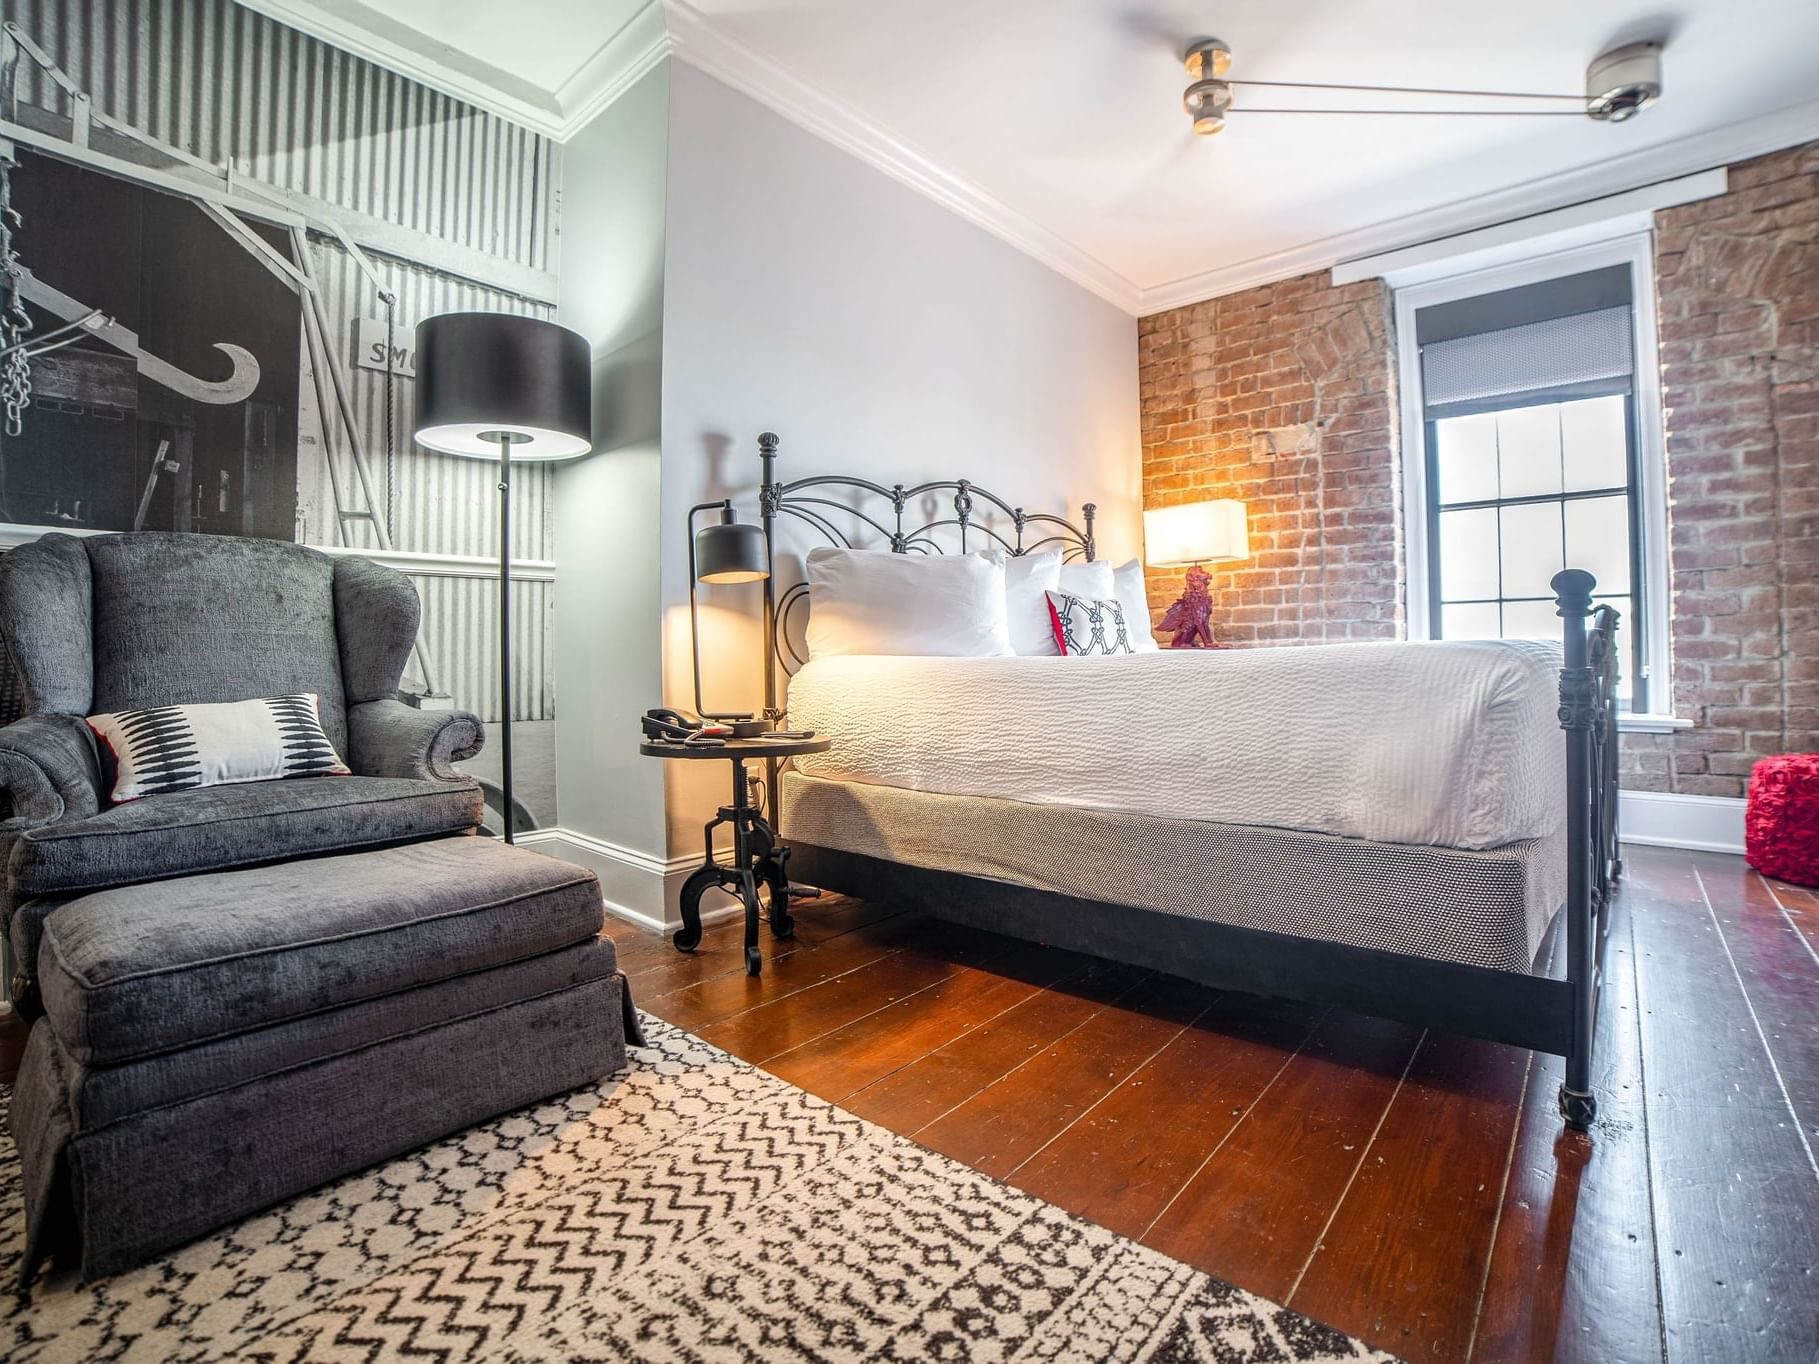 Side view of king size bedroom at River Street Inn